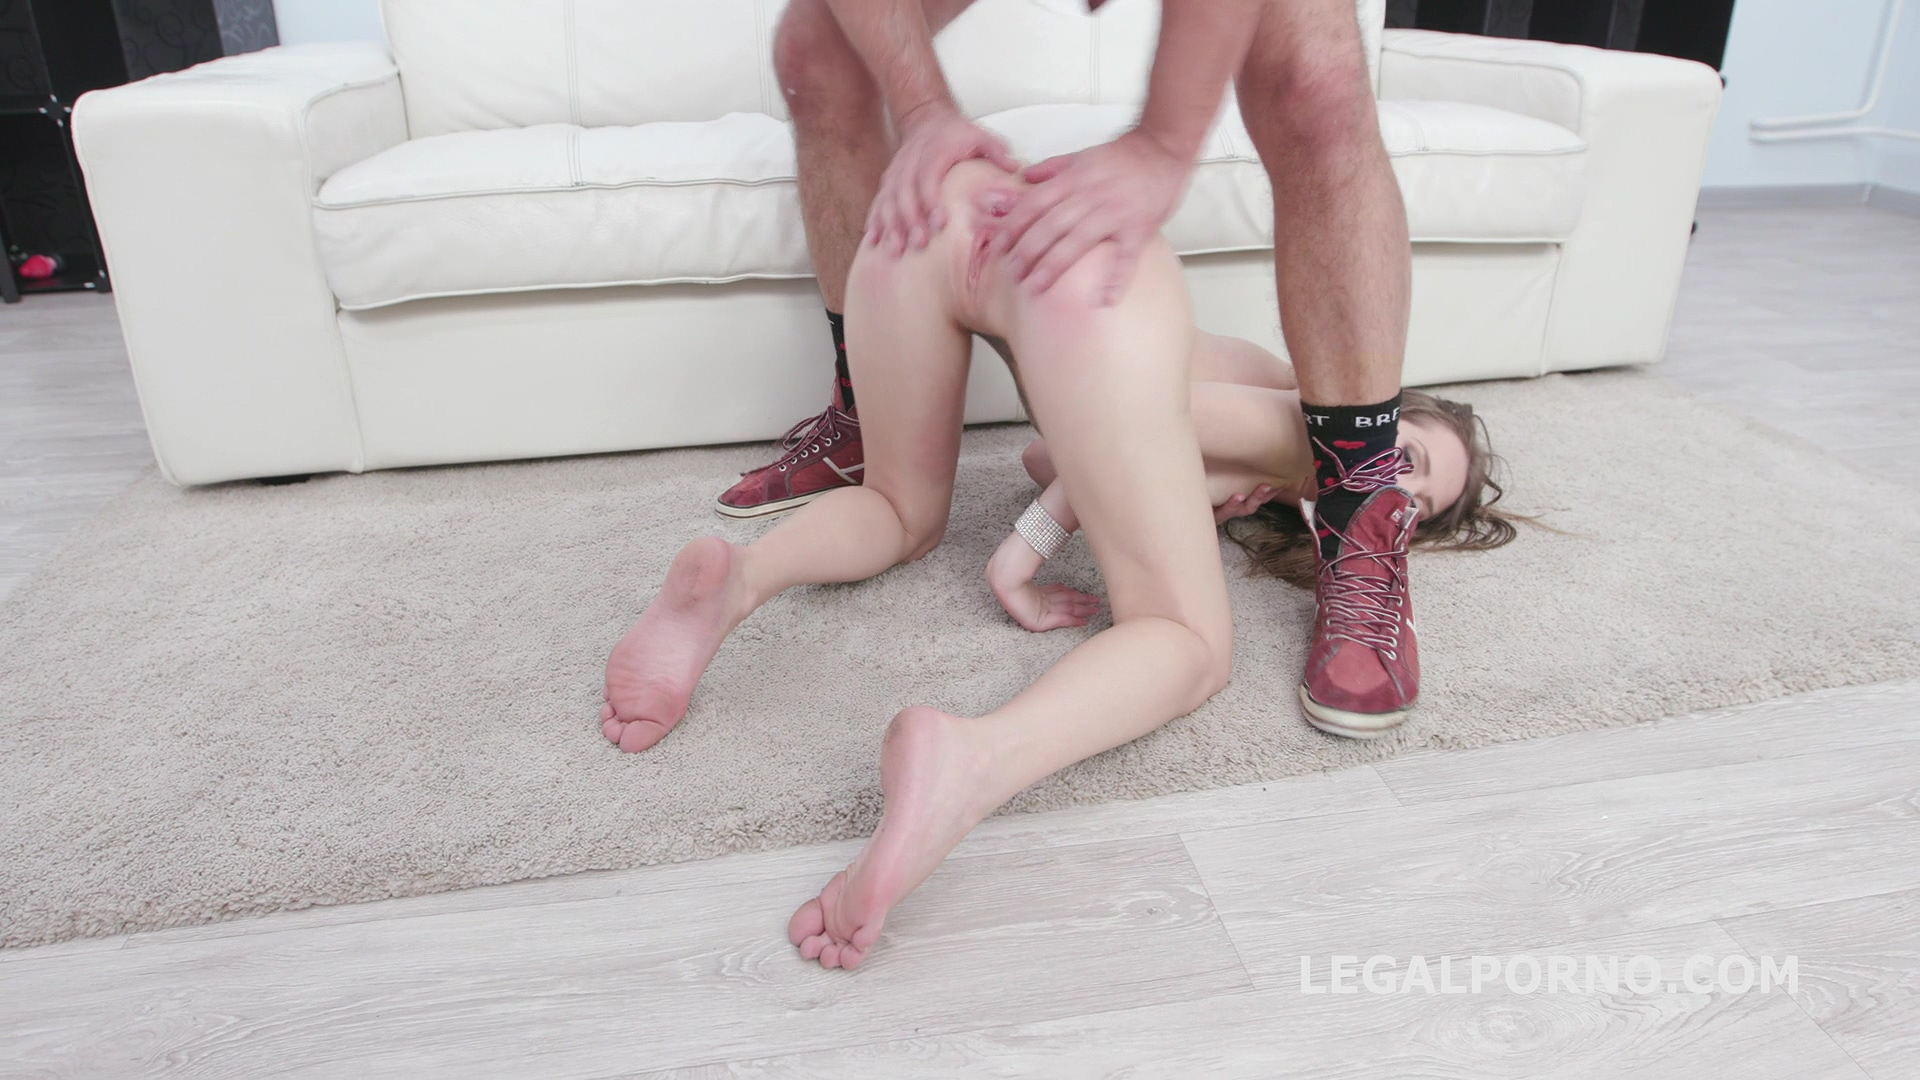 dap_destination_stasia_si_first_time_dap_with_balls_deep_anal_gapes_and_creampie_swallow_gio1393_fhd_mp4_20200317_121800_983.jpg